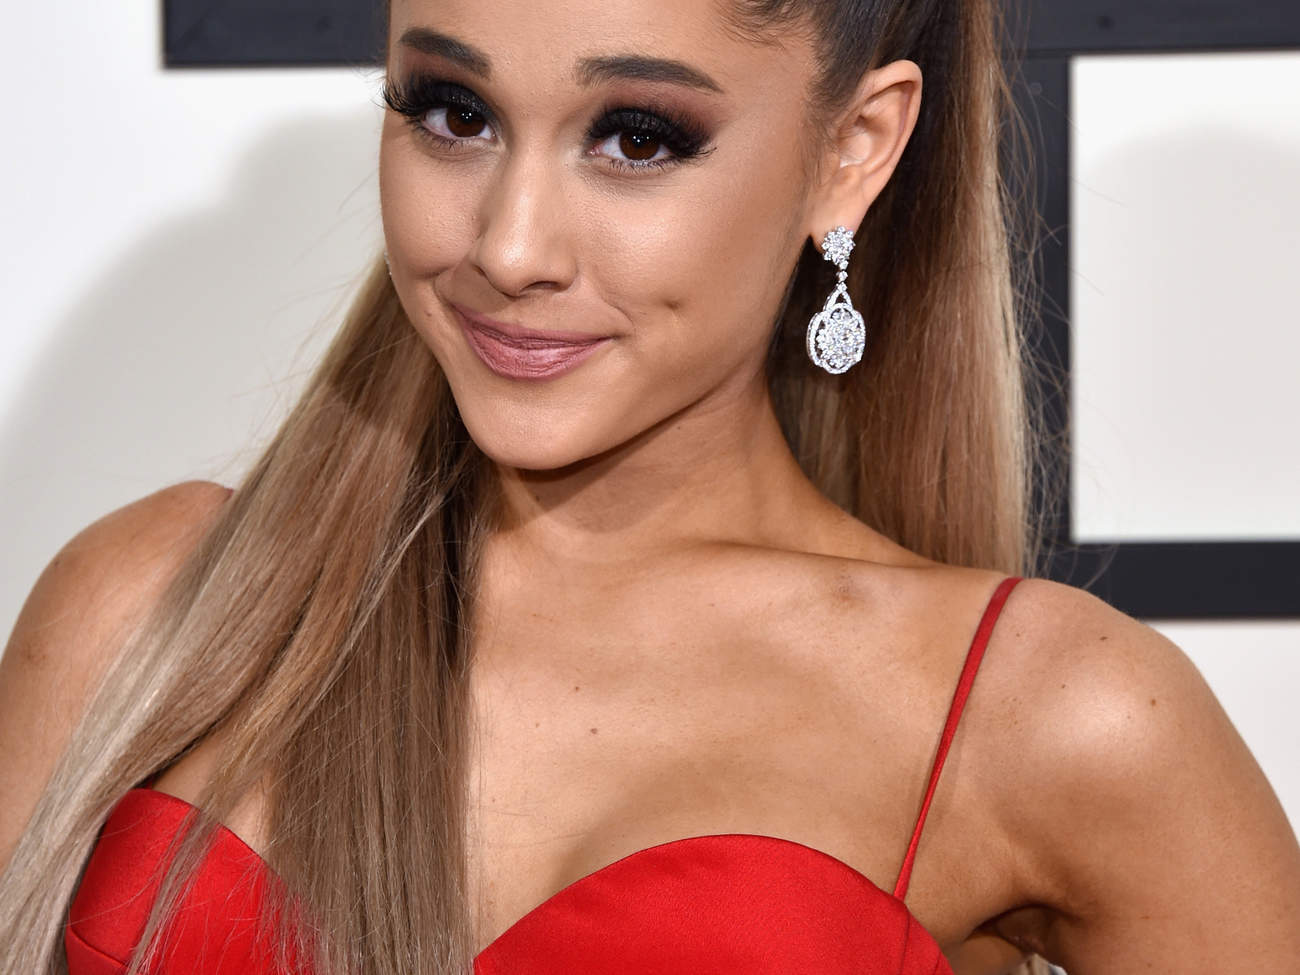 ariana-grande-closeup-earrings